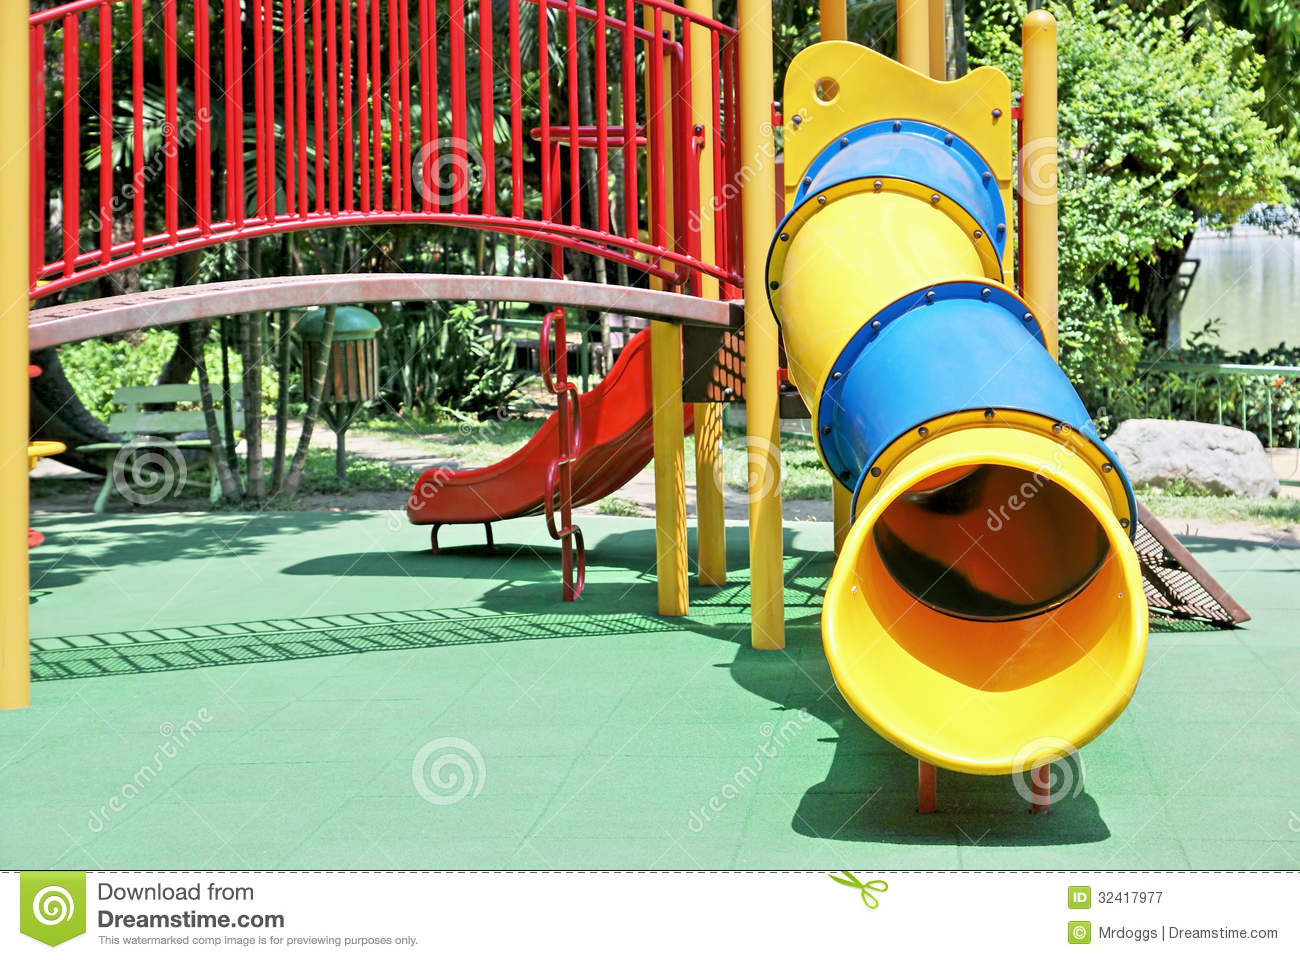 Kids tunnel clipart.